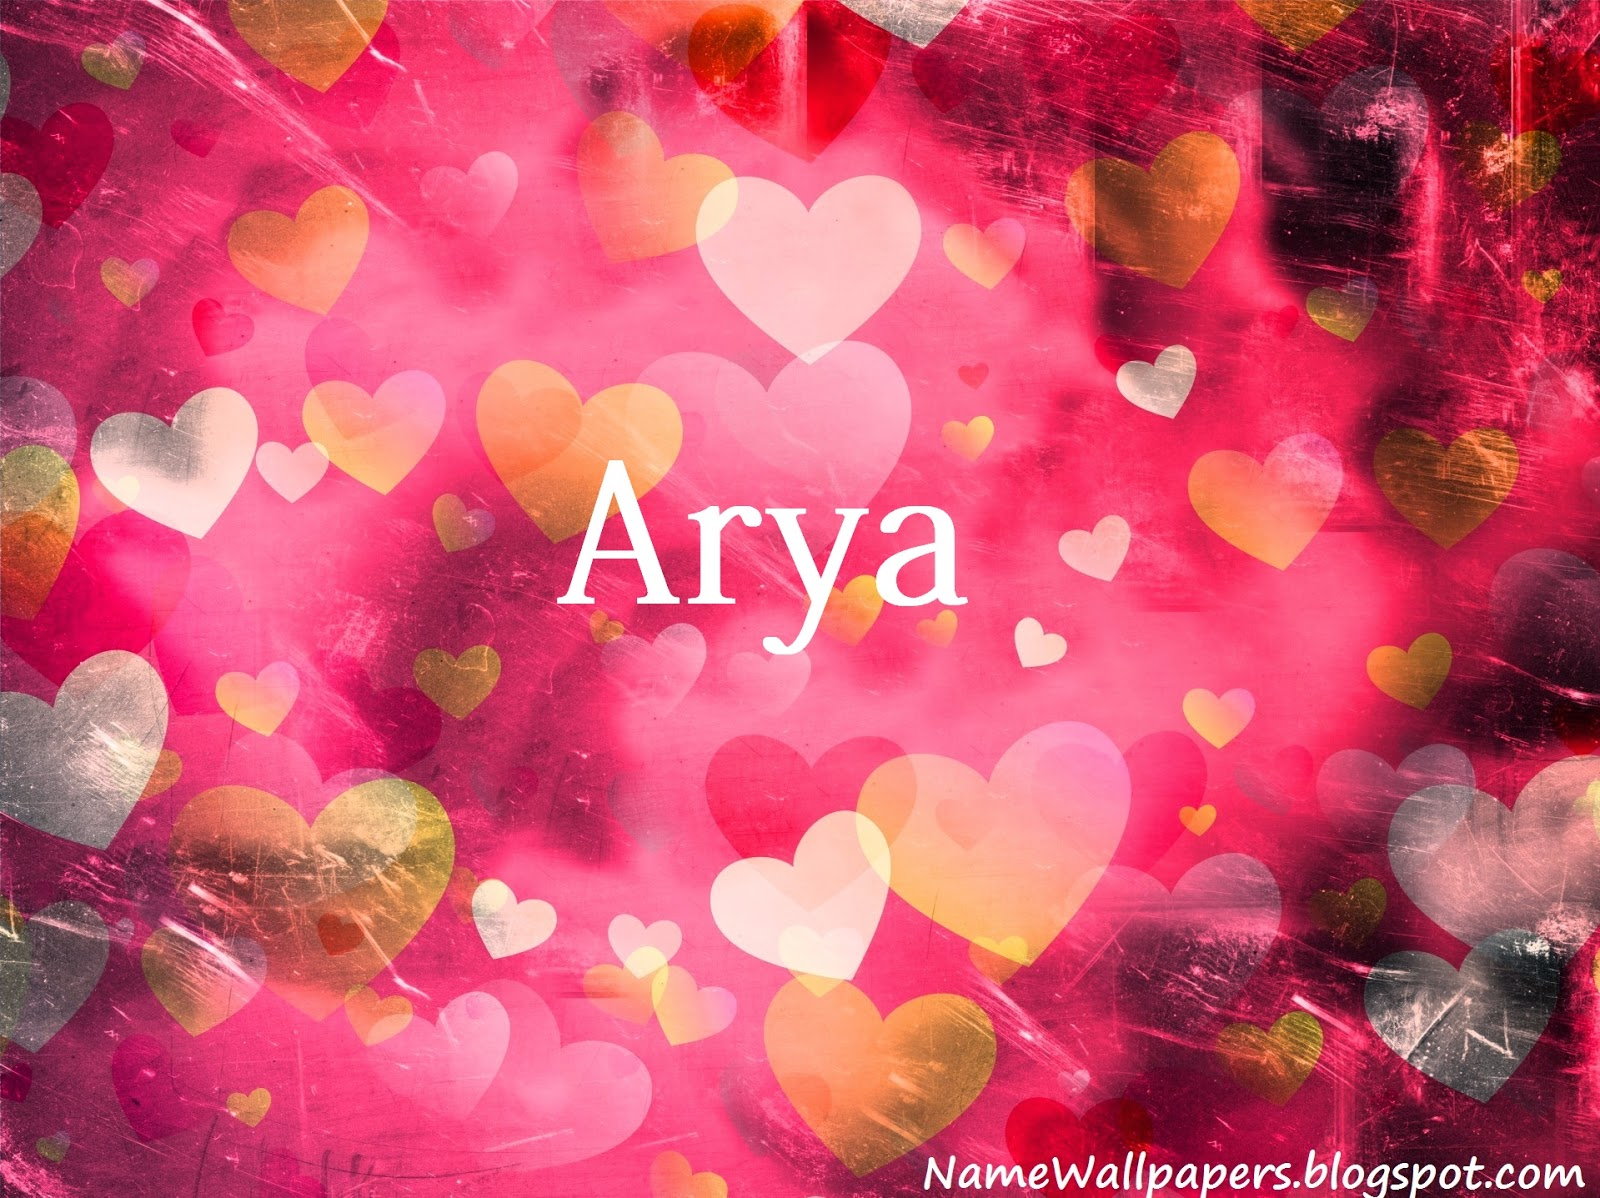 Arya Name Wallpaper